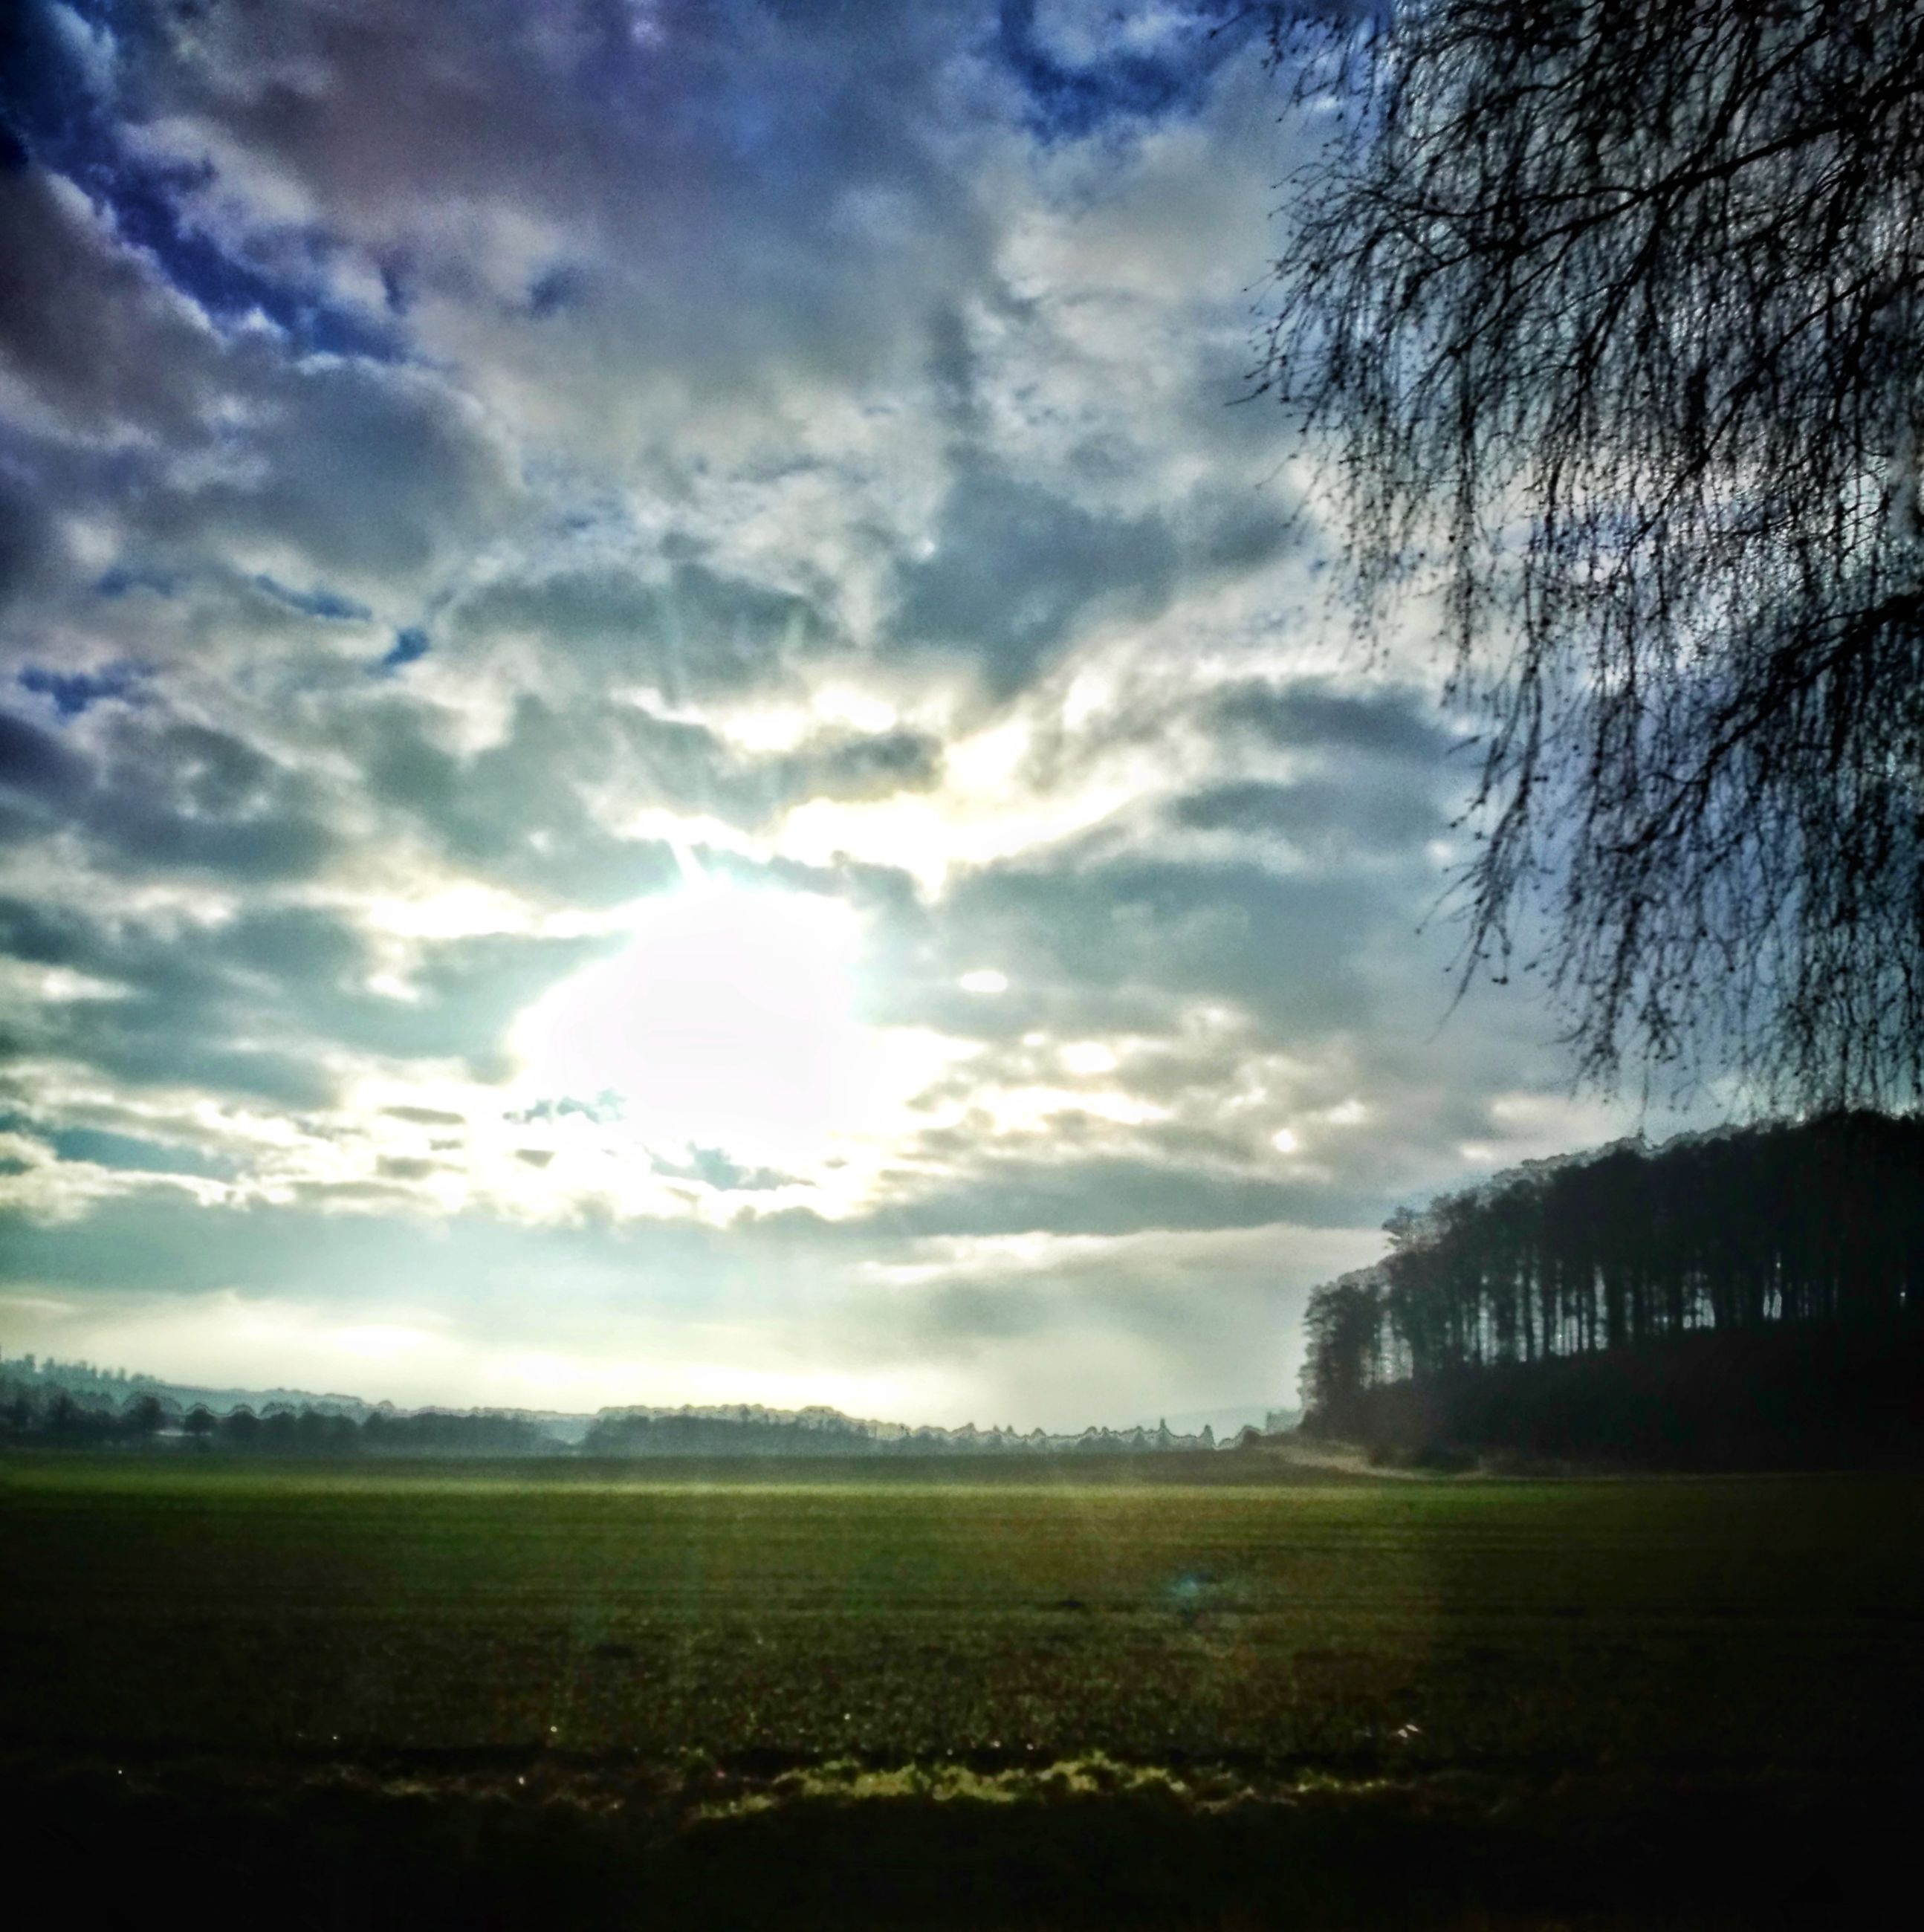 sky, tree, cloud - sky, architecture, built structure, grass, nature, no people, building exterior, growth, outdoors, beauty in nature, scenics, day